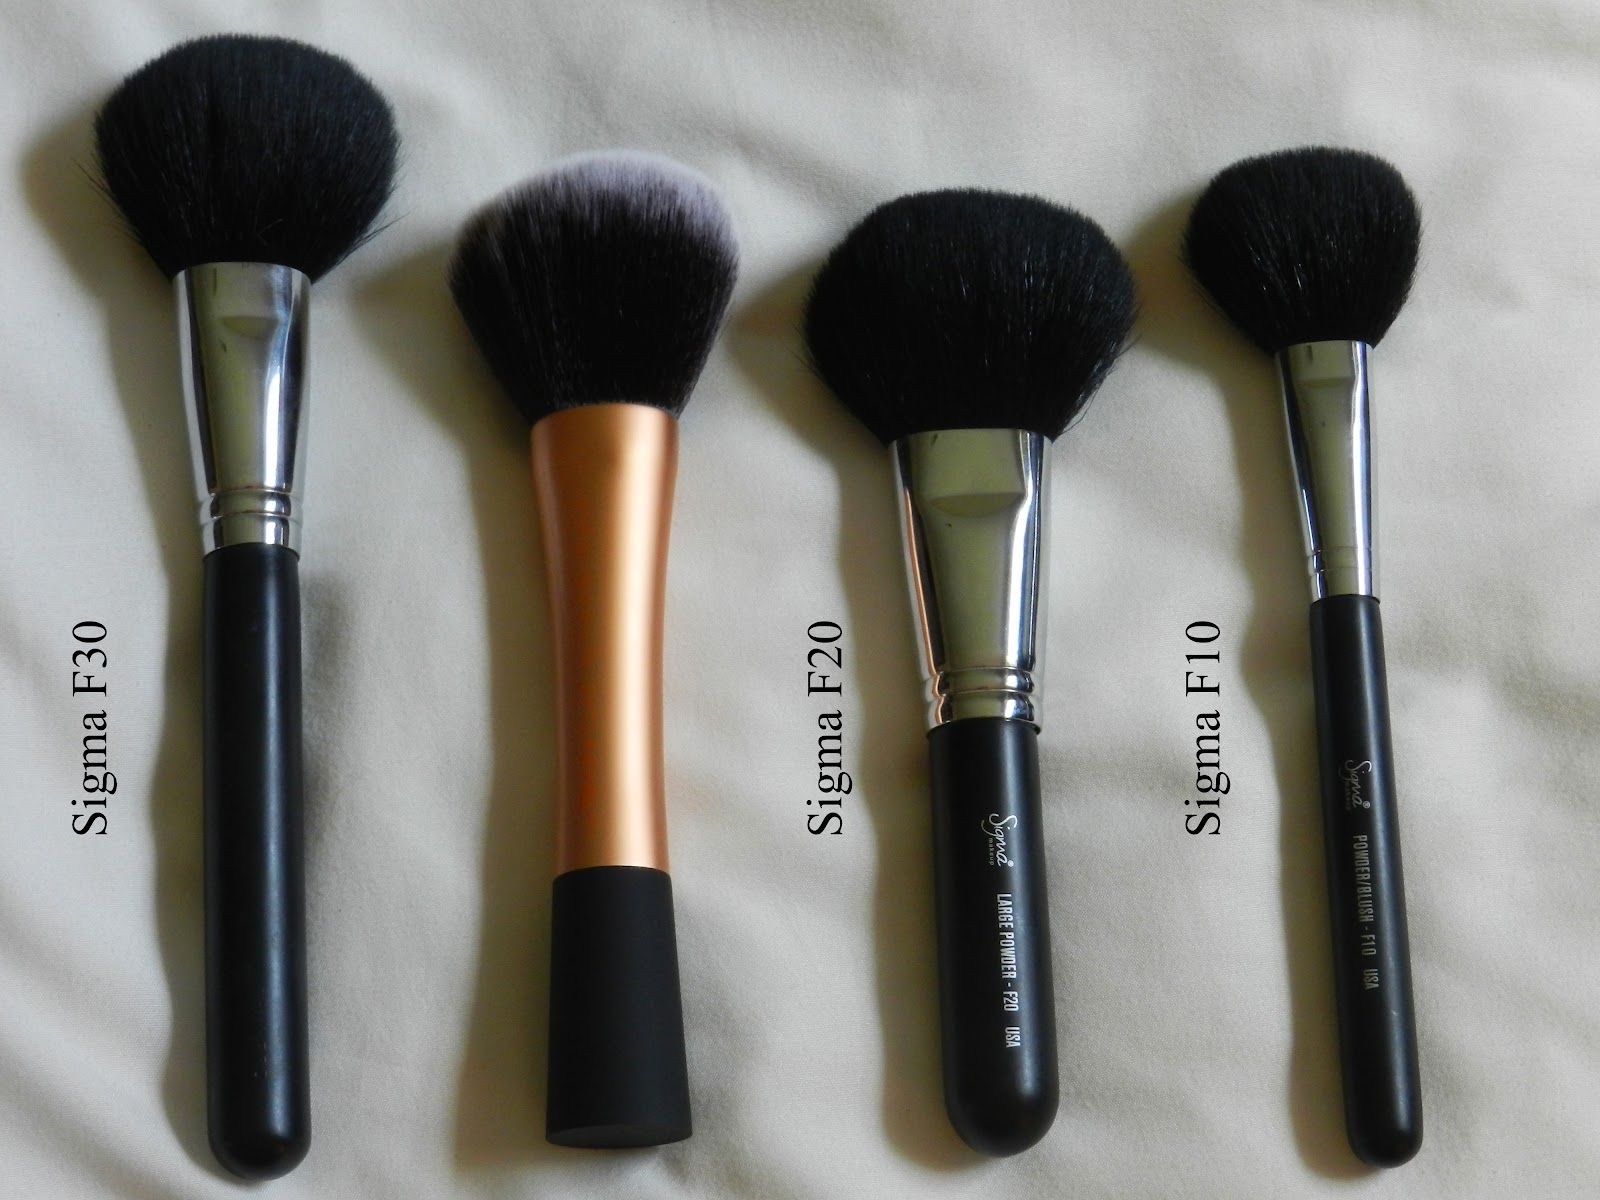 MAKEUP BRUSHES Review & Comparison of Real Techniques